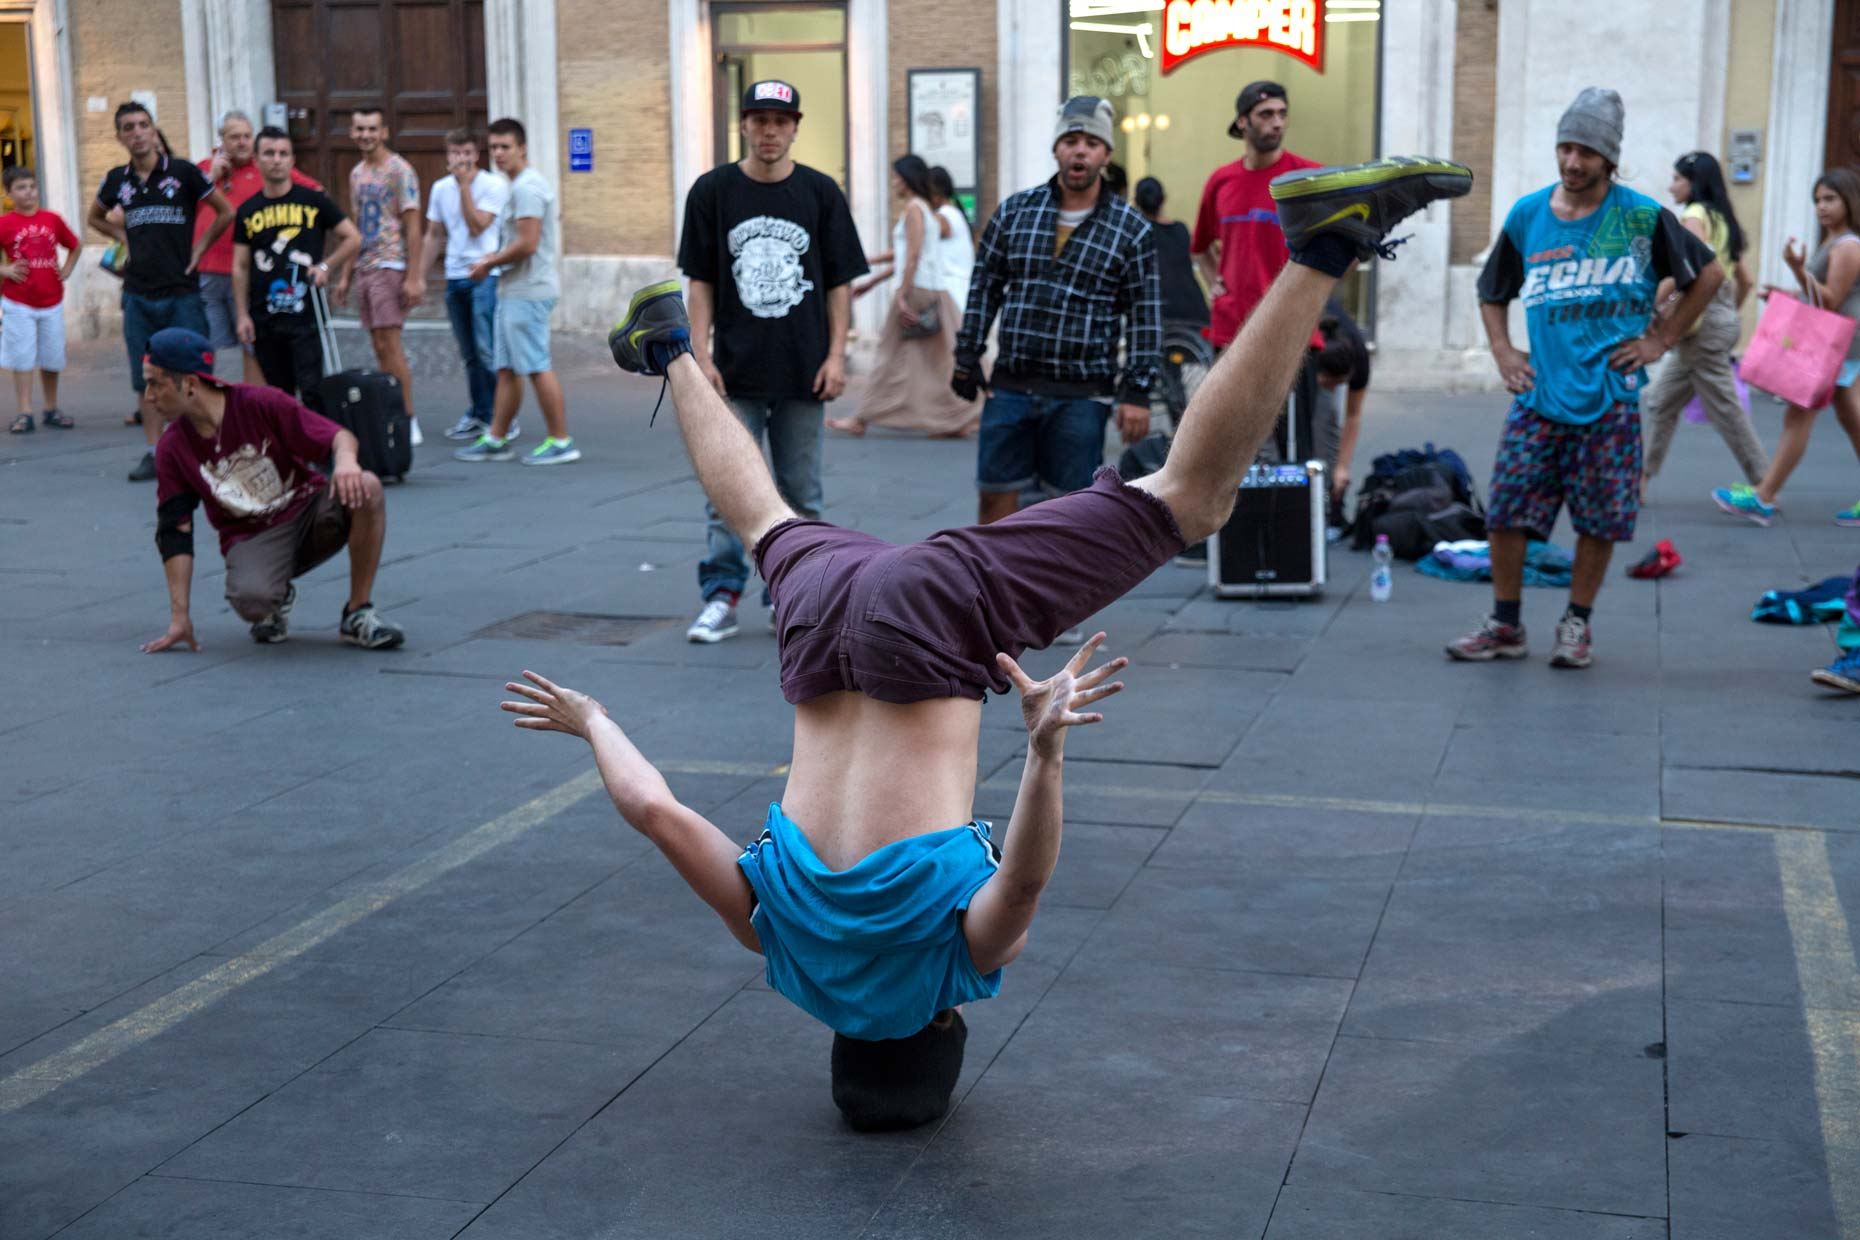 Italy-Rome-break-dancers